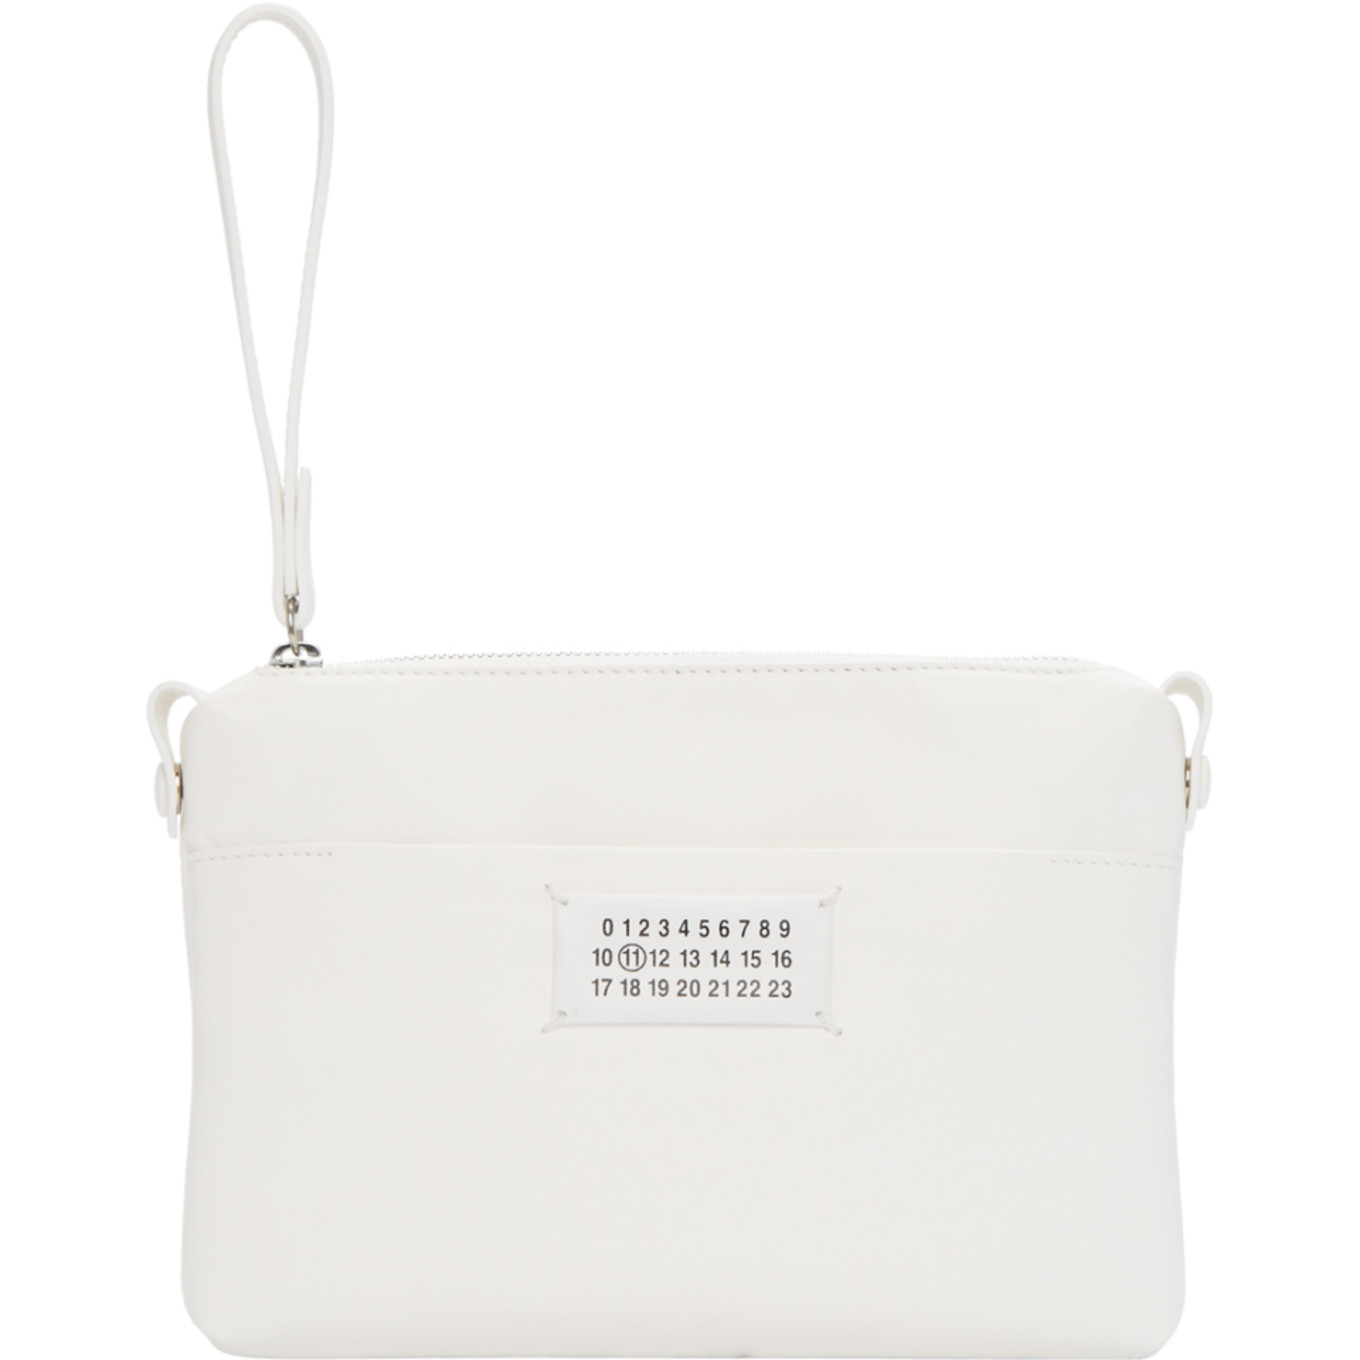 White Small Pouch by Maison Margiela